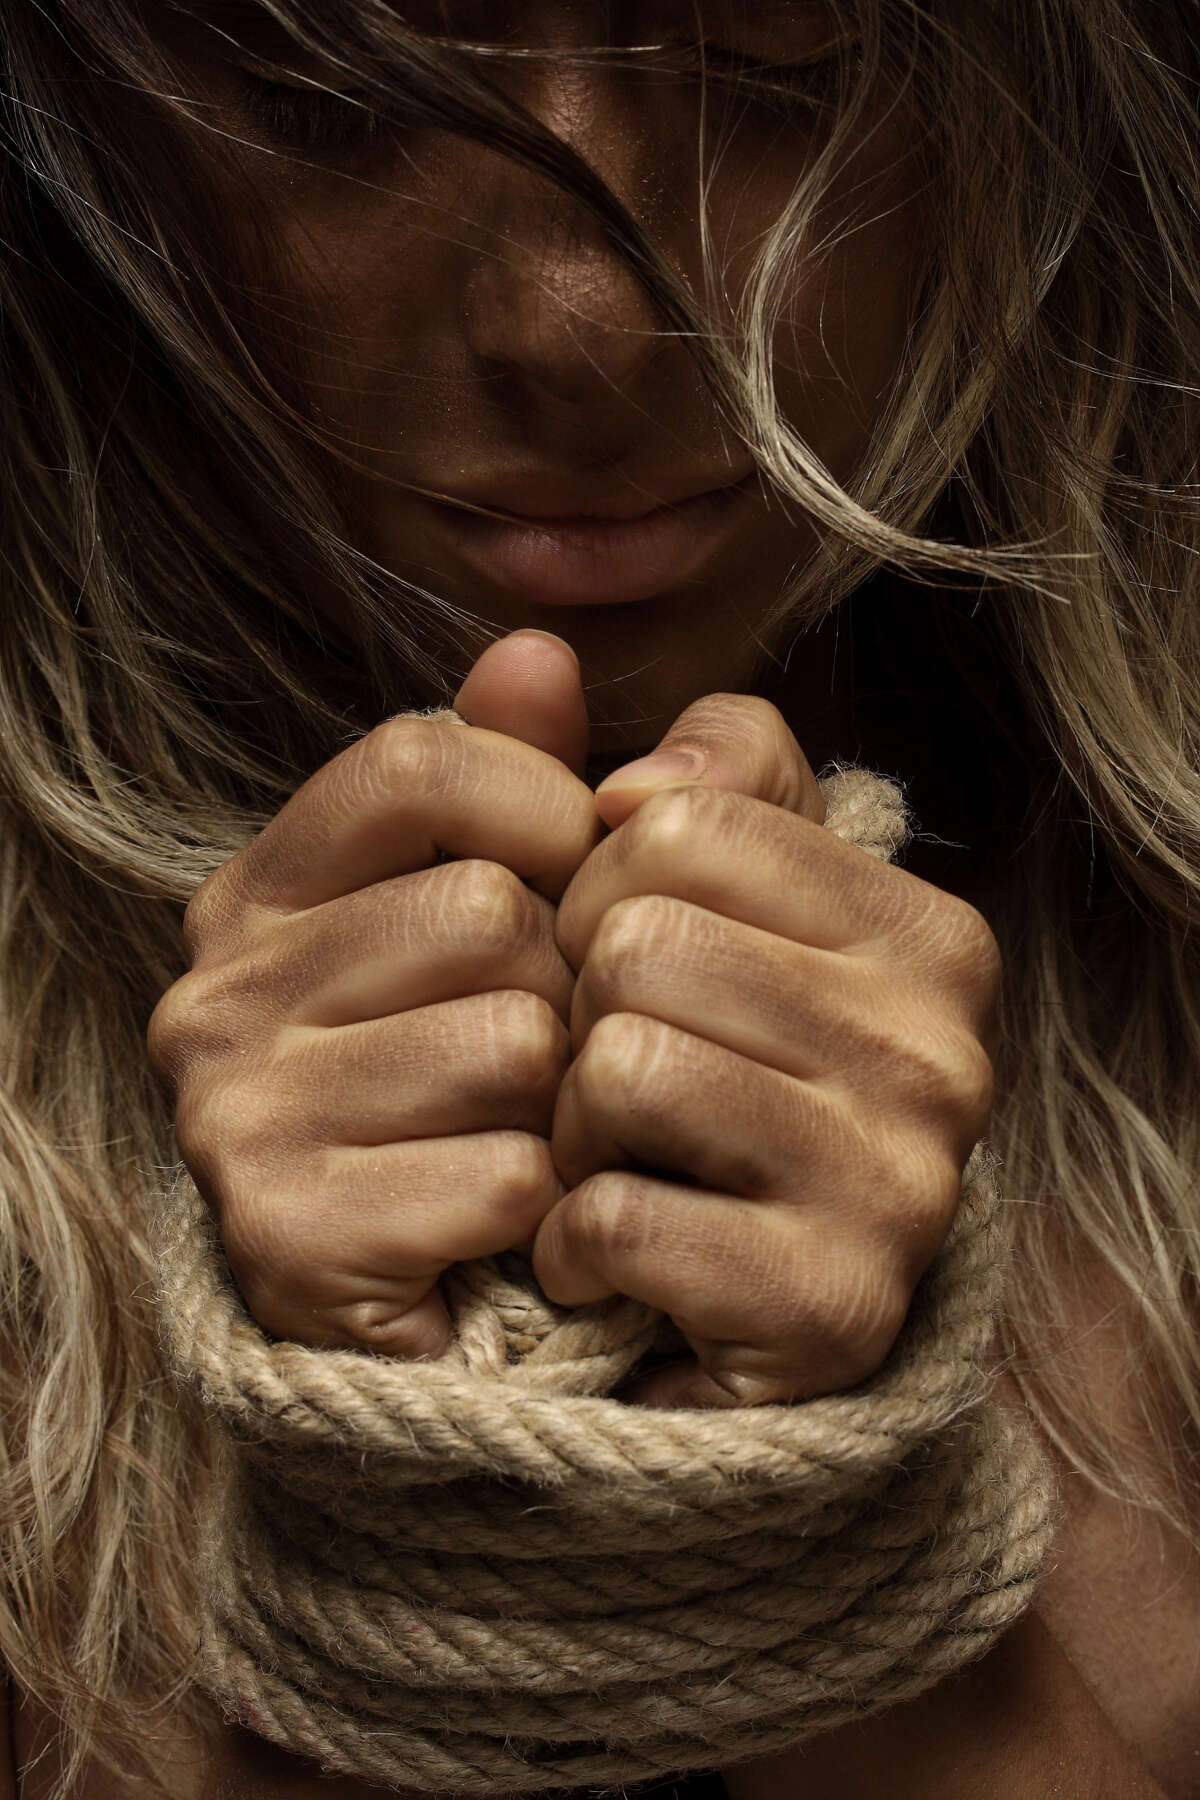 In 2017 alone Washington reported 163 human trafficking cases, ranking it the 13th highest state in reported instances.